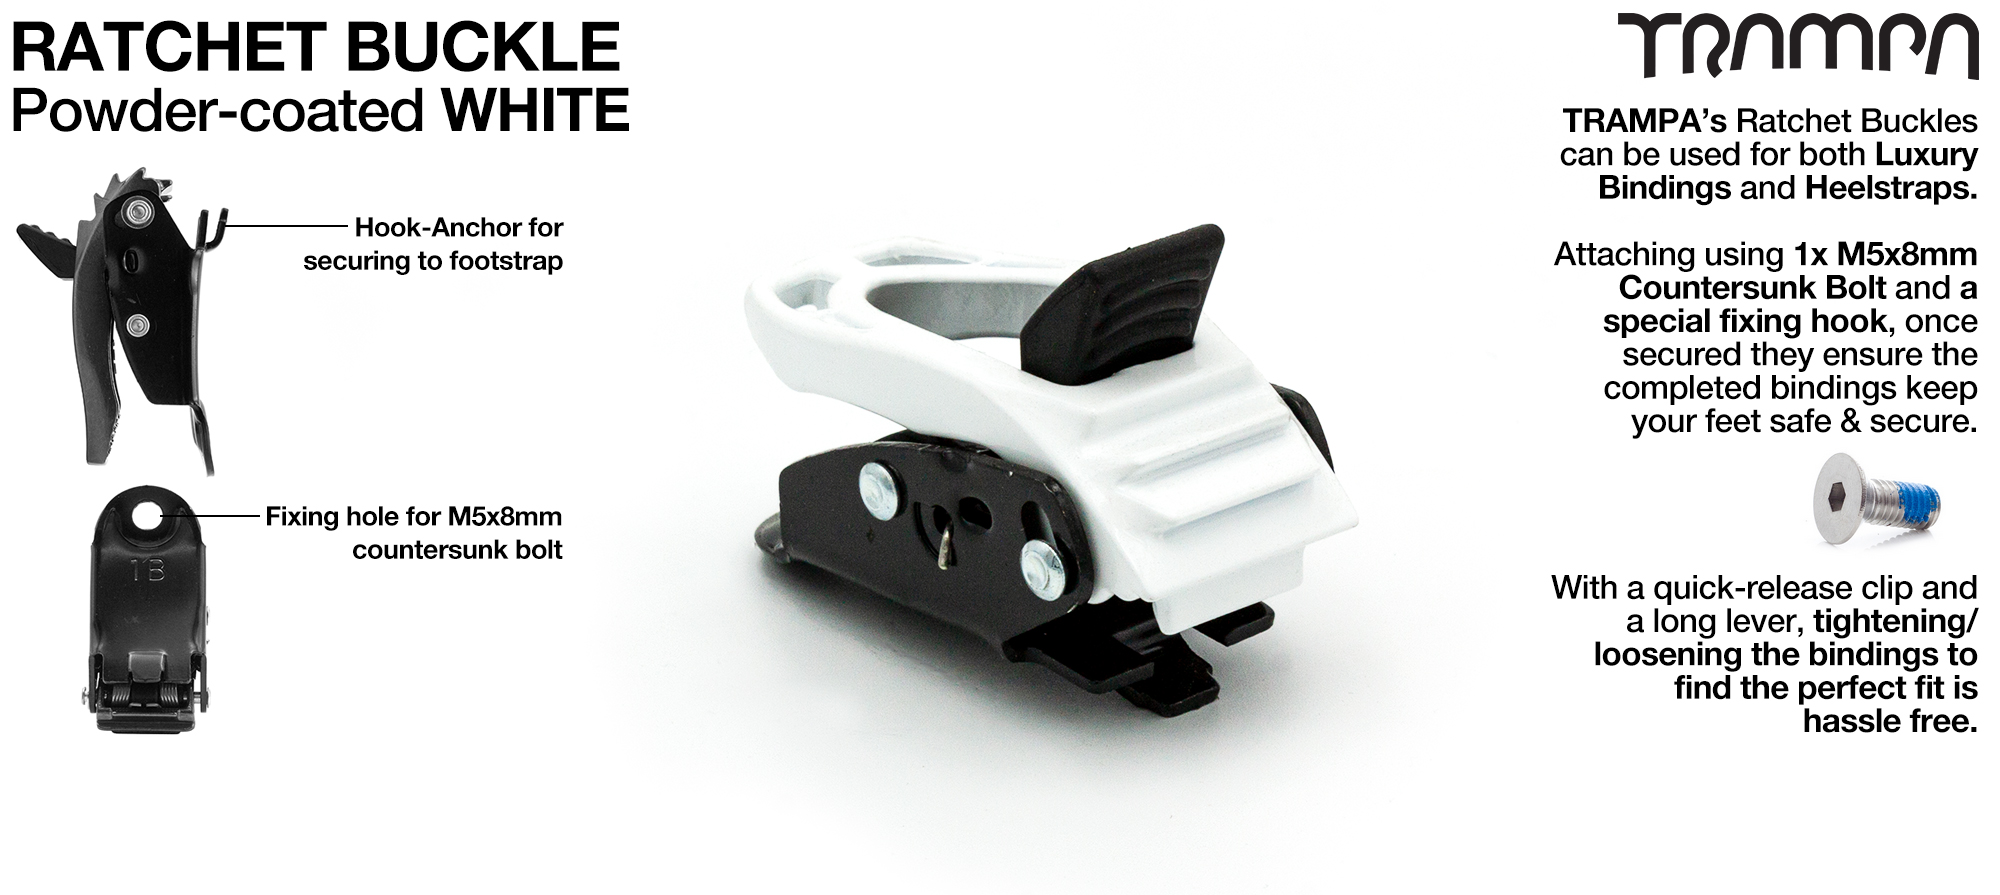 Ratchet Buckle Powder coated White